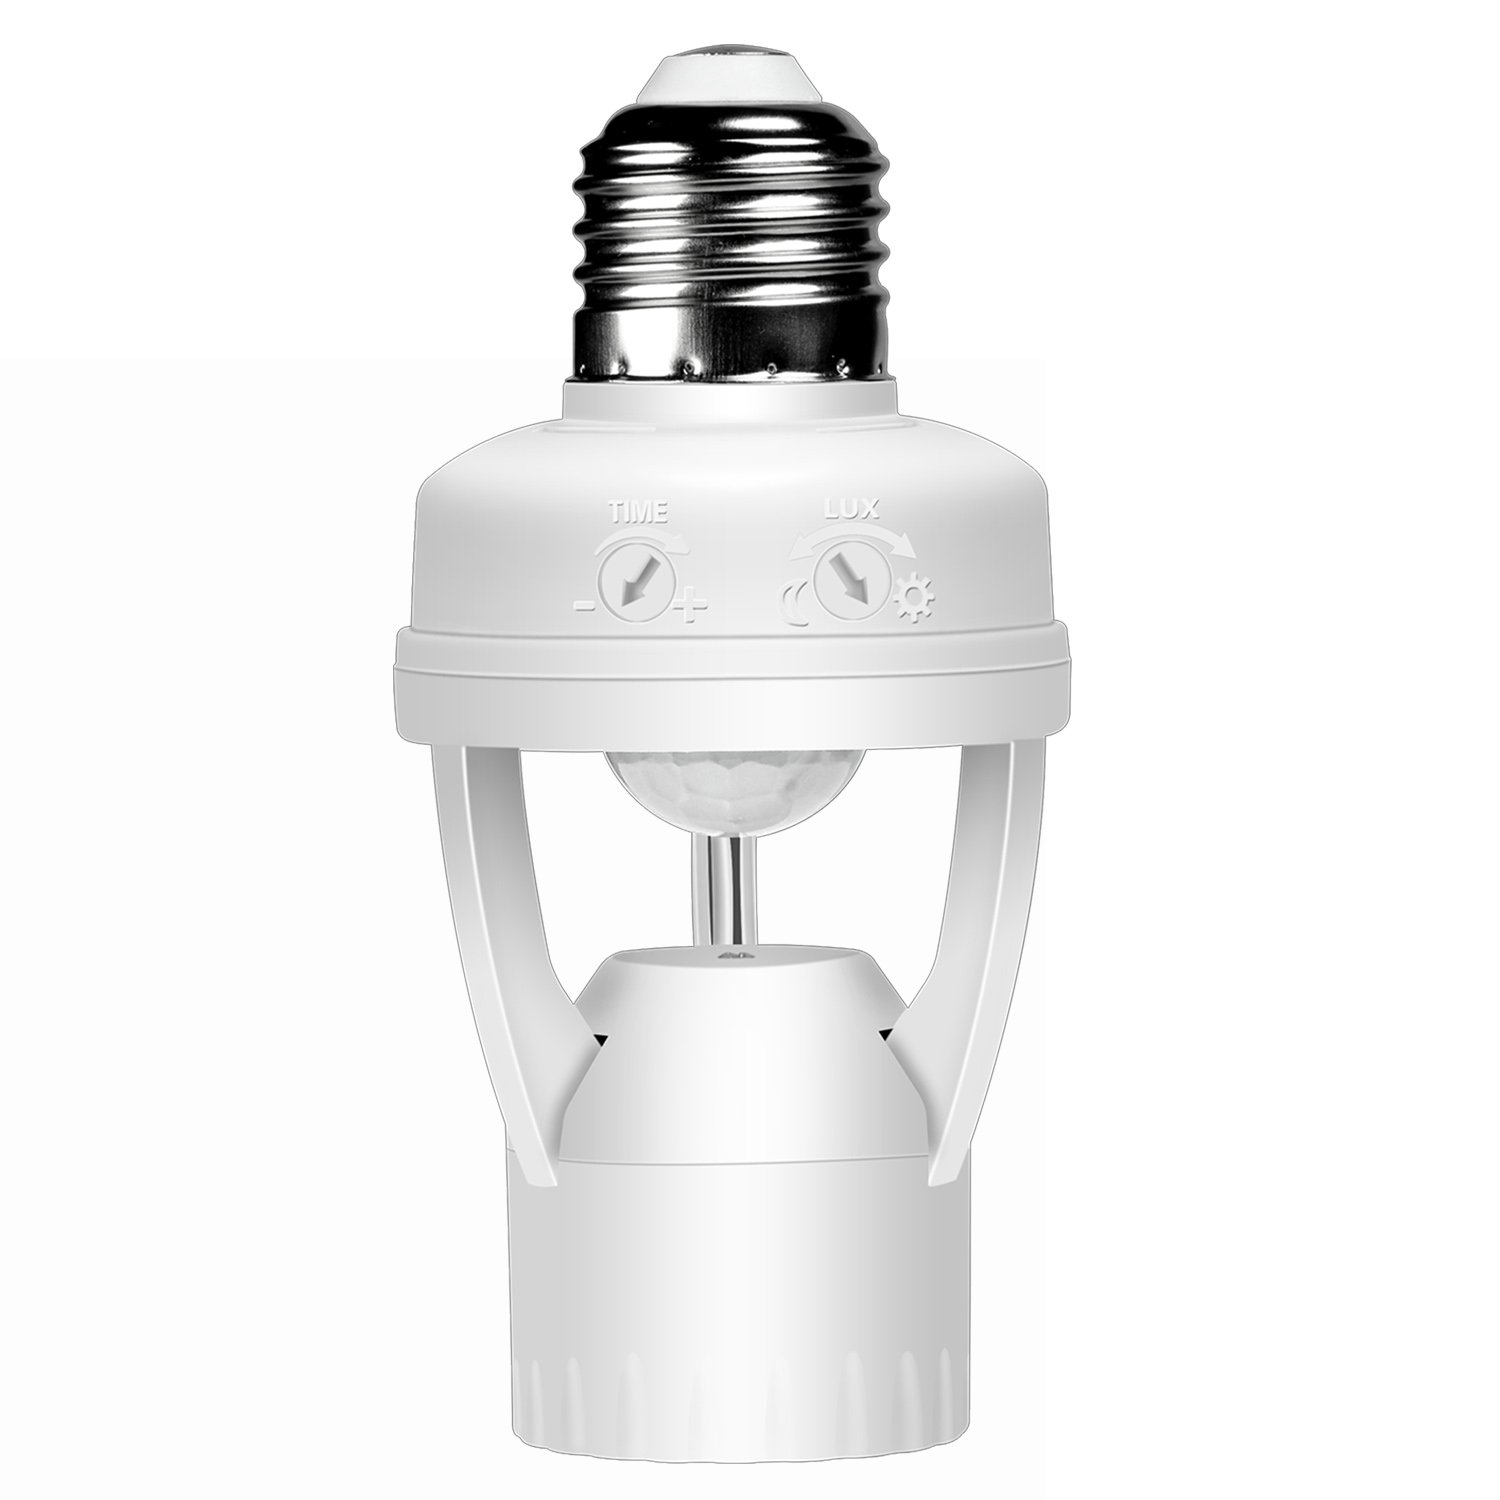 Motion Sensor Light Bulb Socket Infrared Sensor Adapter Adjustable TIME and LUX Switches Suitable for E26 E27 Base Standard Screw-in Light Bulb Socket by LUXON